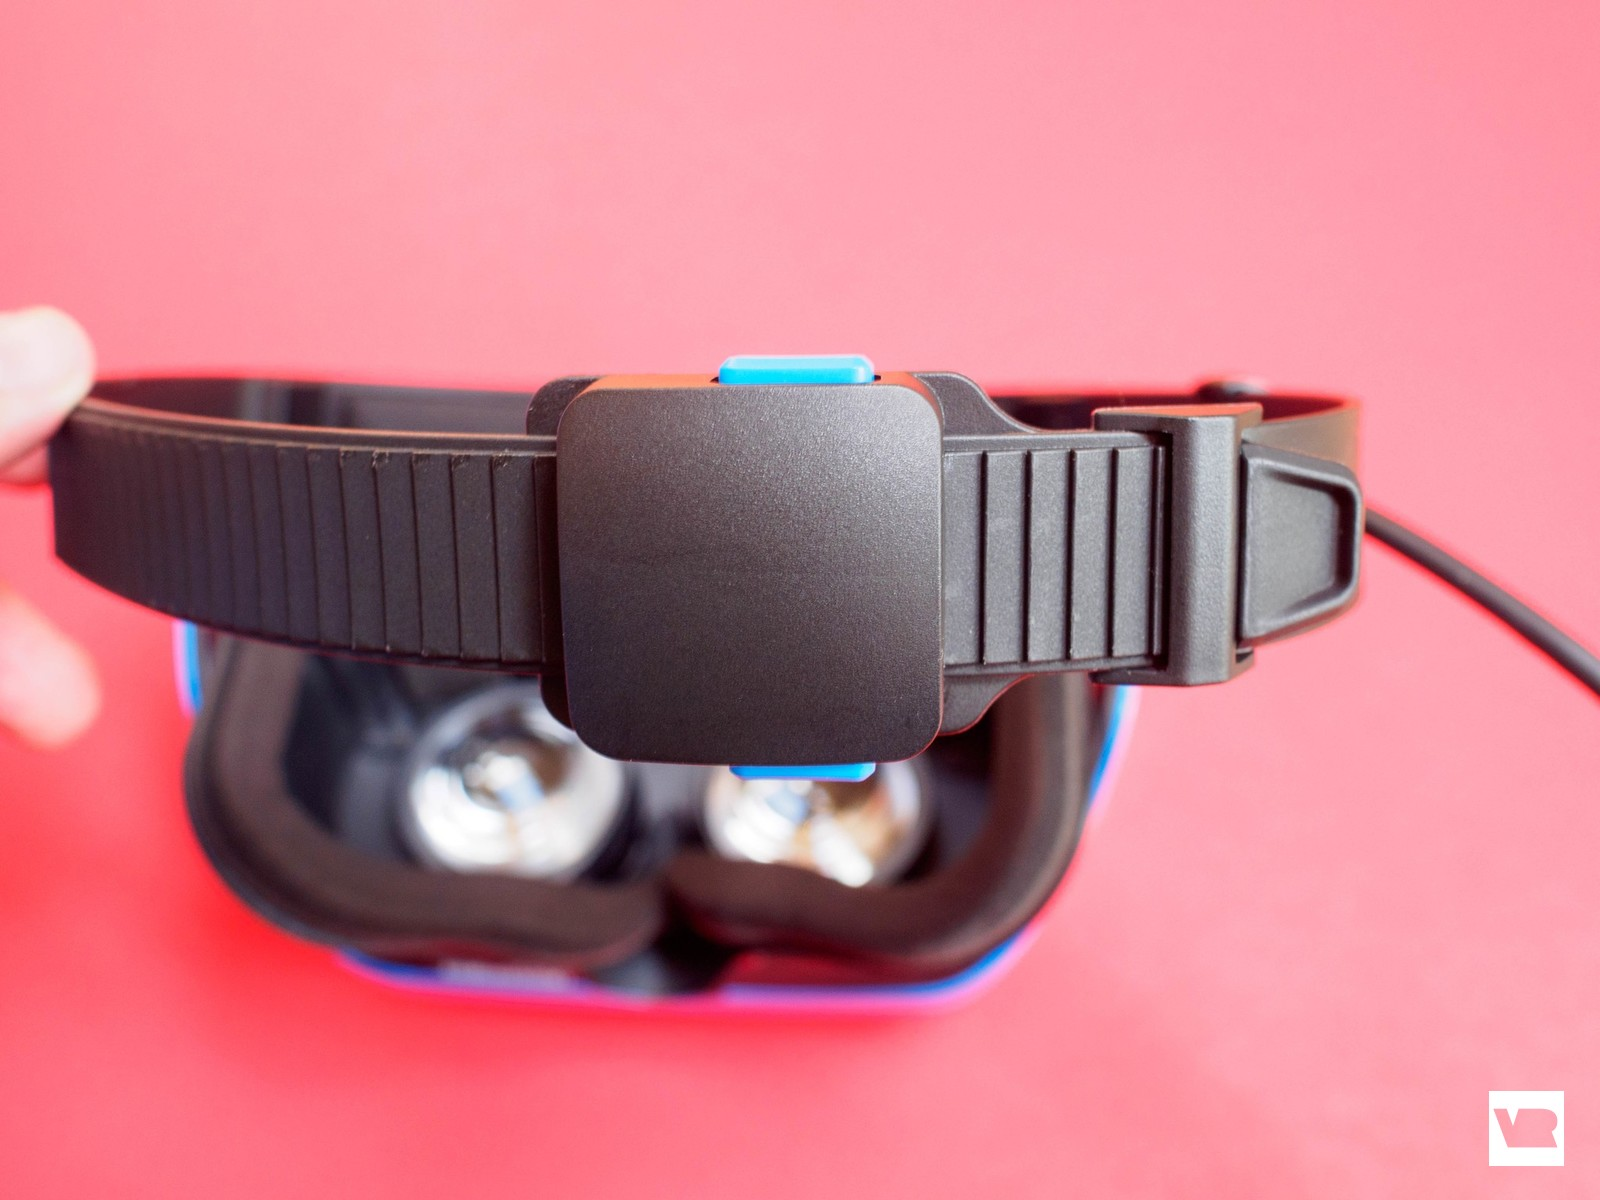 Acer Mixed Reality Strap